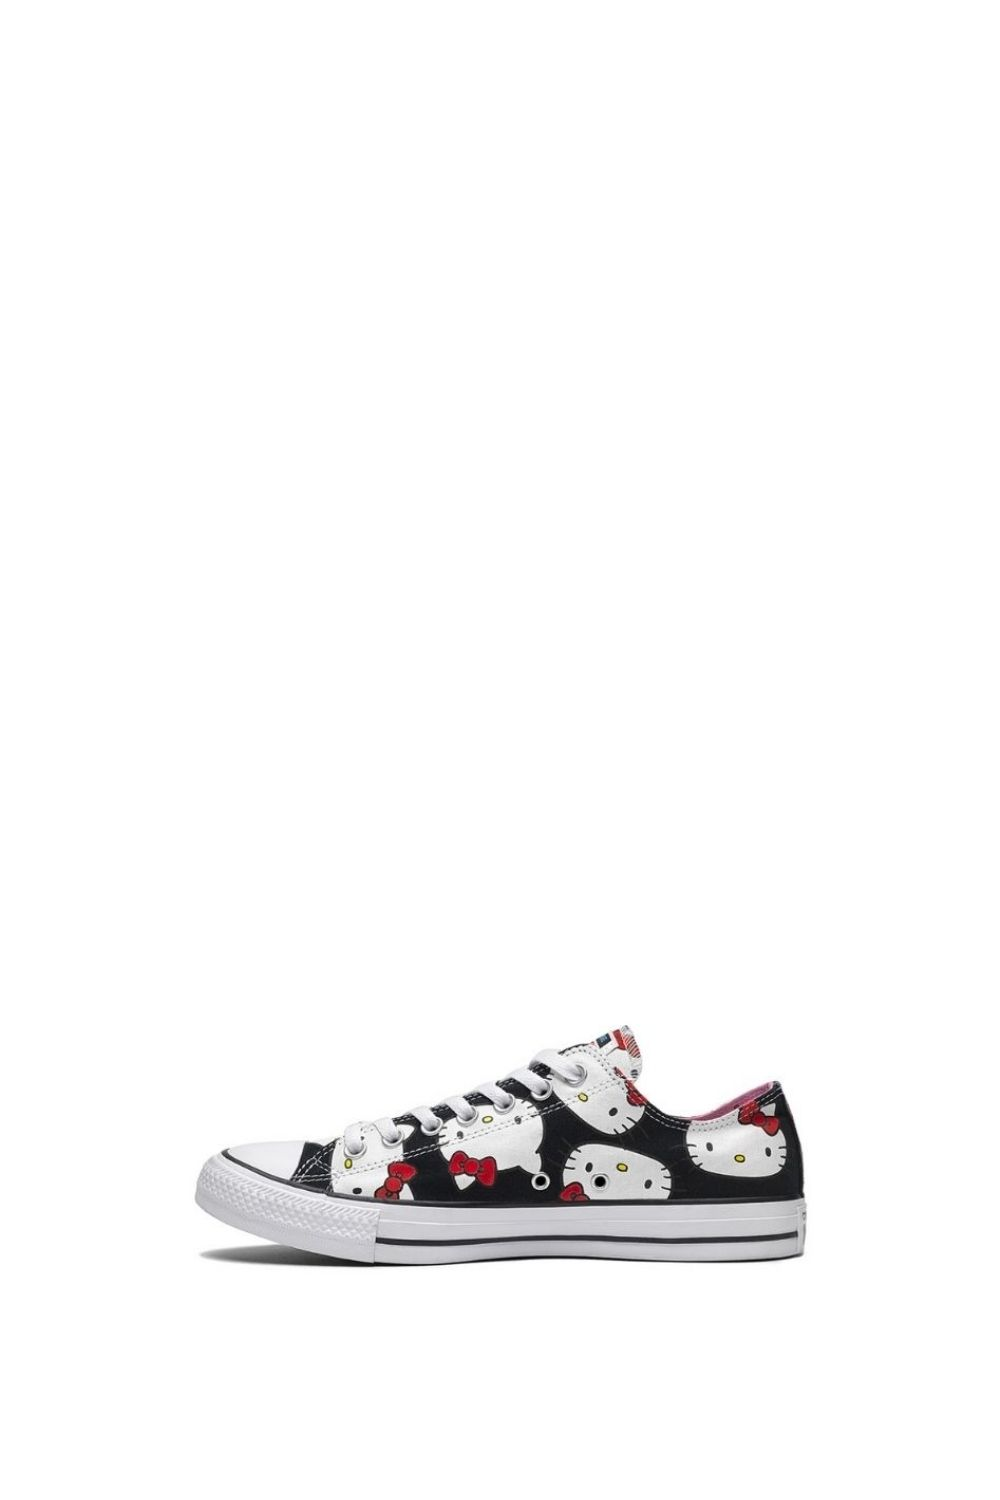 online retailer cff63 c1559 36.72 € στο Collective Online. CONVERSE - Βρεφικά sneakers Converse x Hello  Kitty Chuck Taylor All Star μαύρα